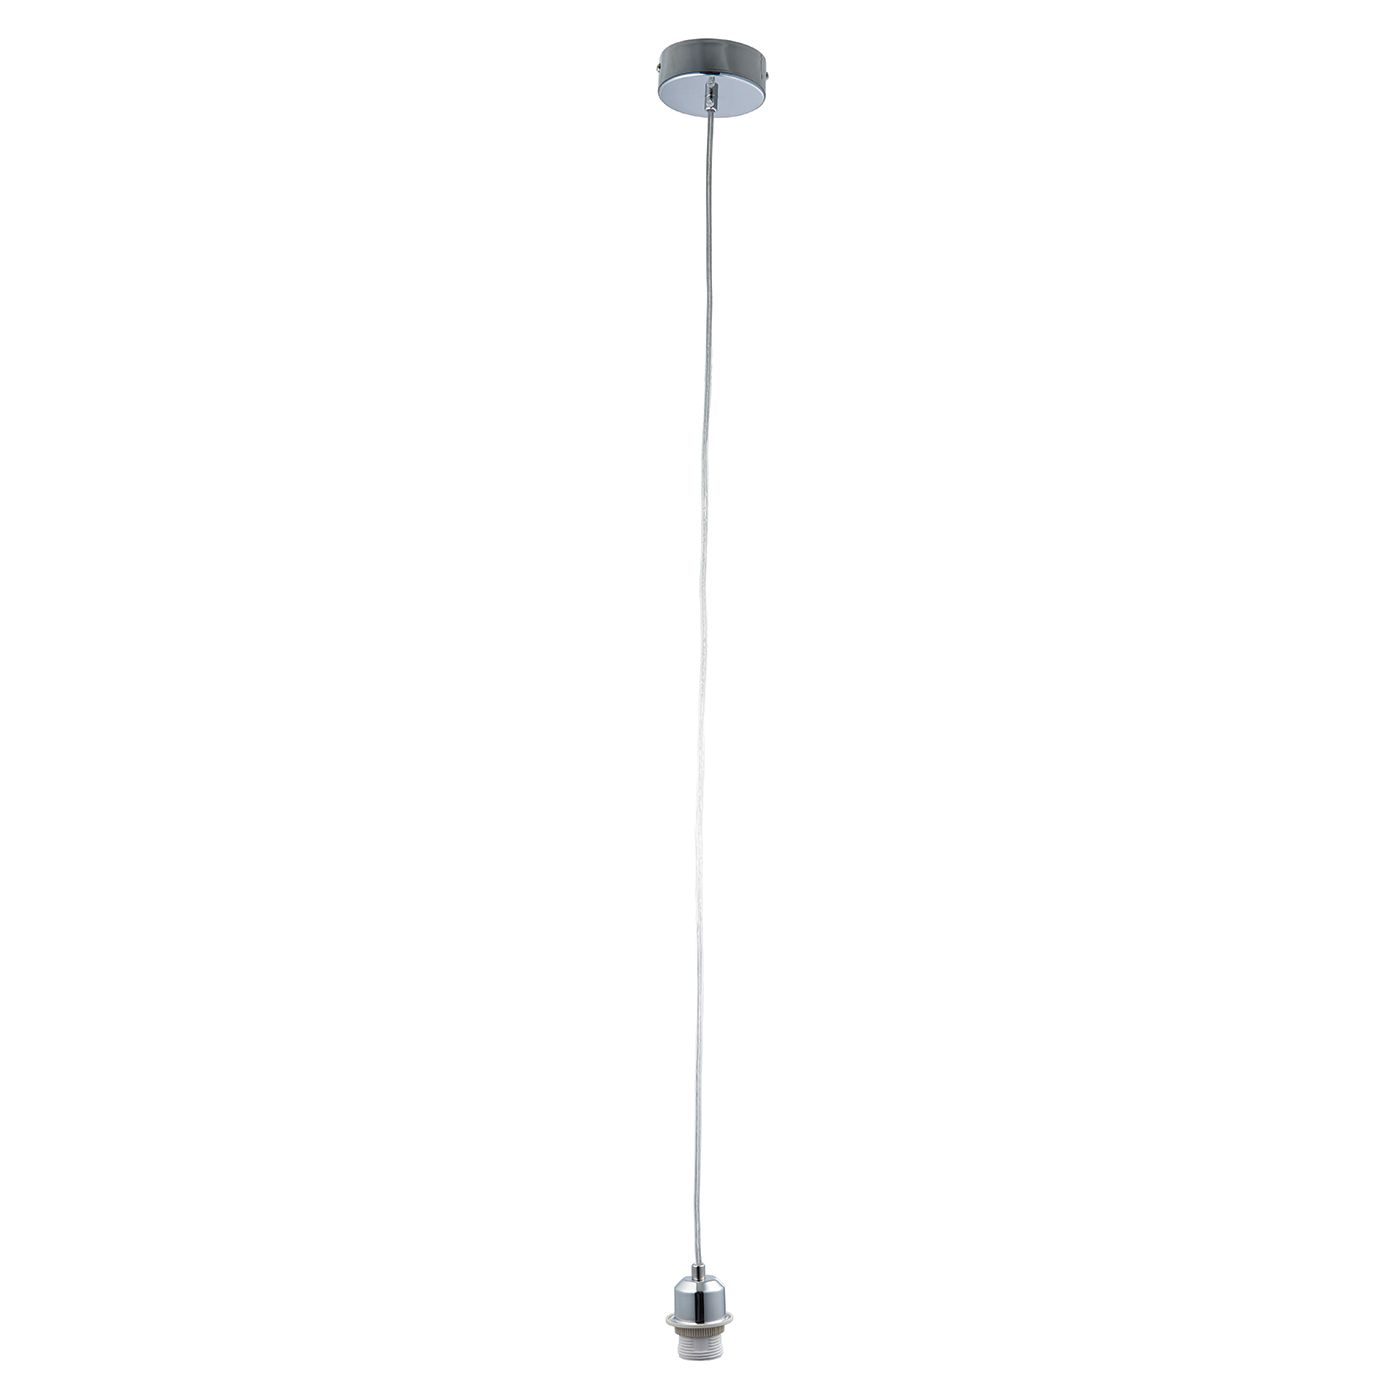 Zawieszenie do lamp marki Endon Lighting - chrom